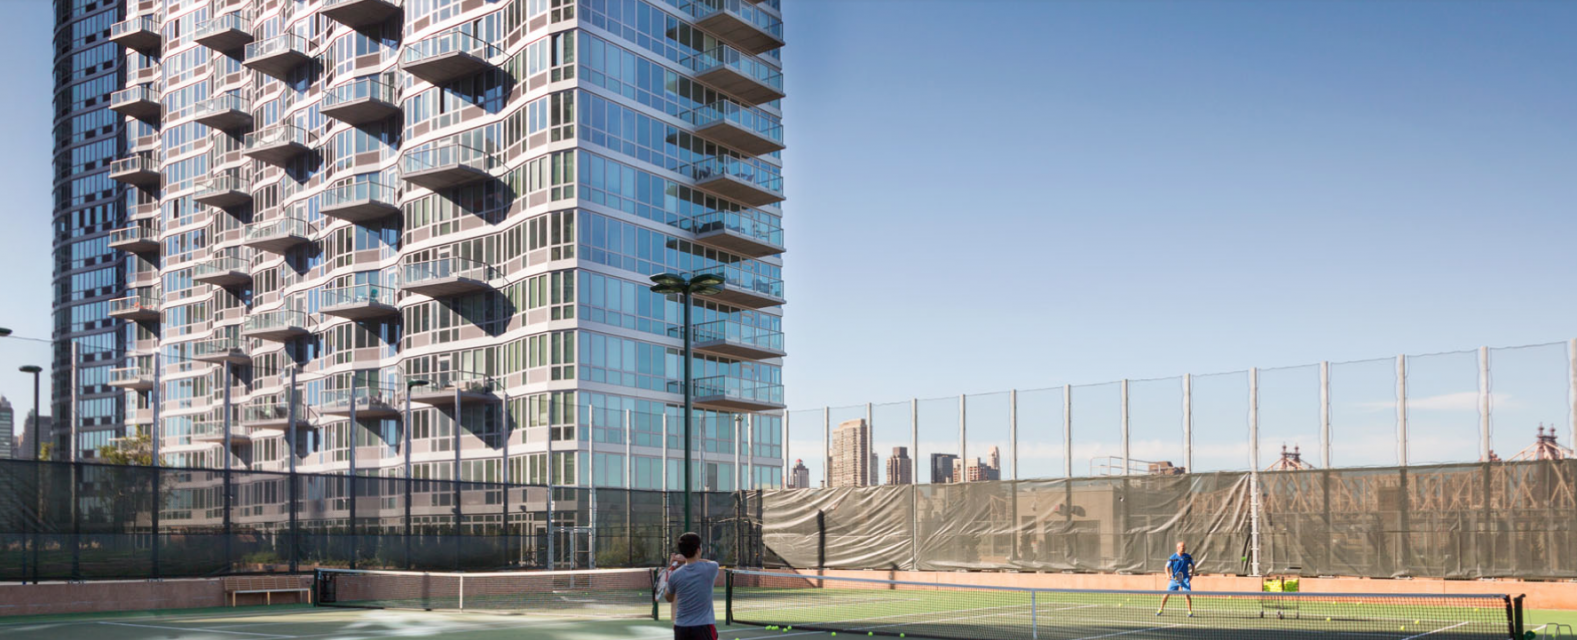 Tennis Court - 45-45 Center Boulevard - Long Island City